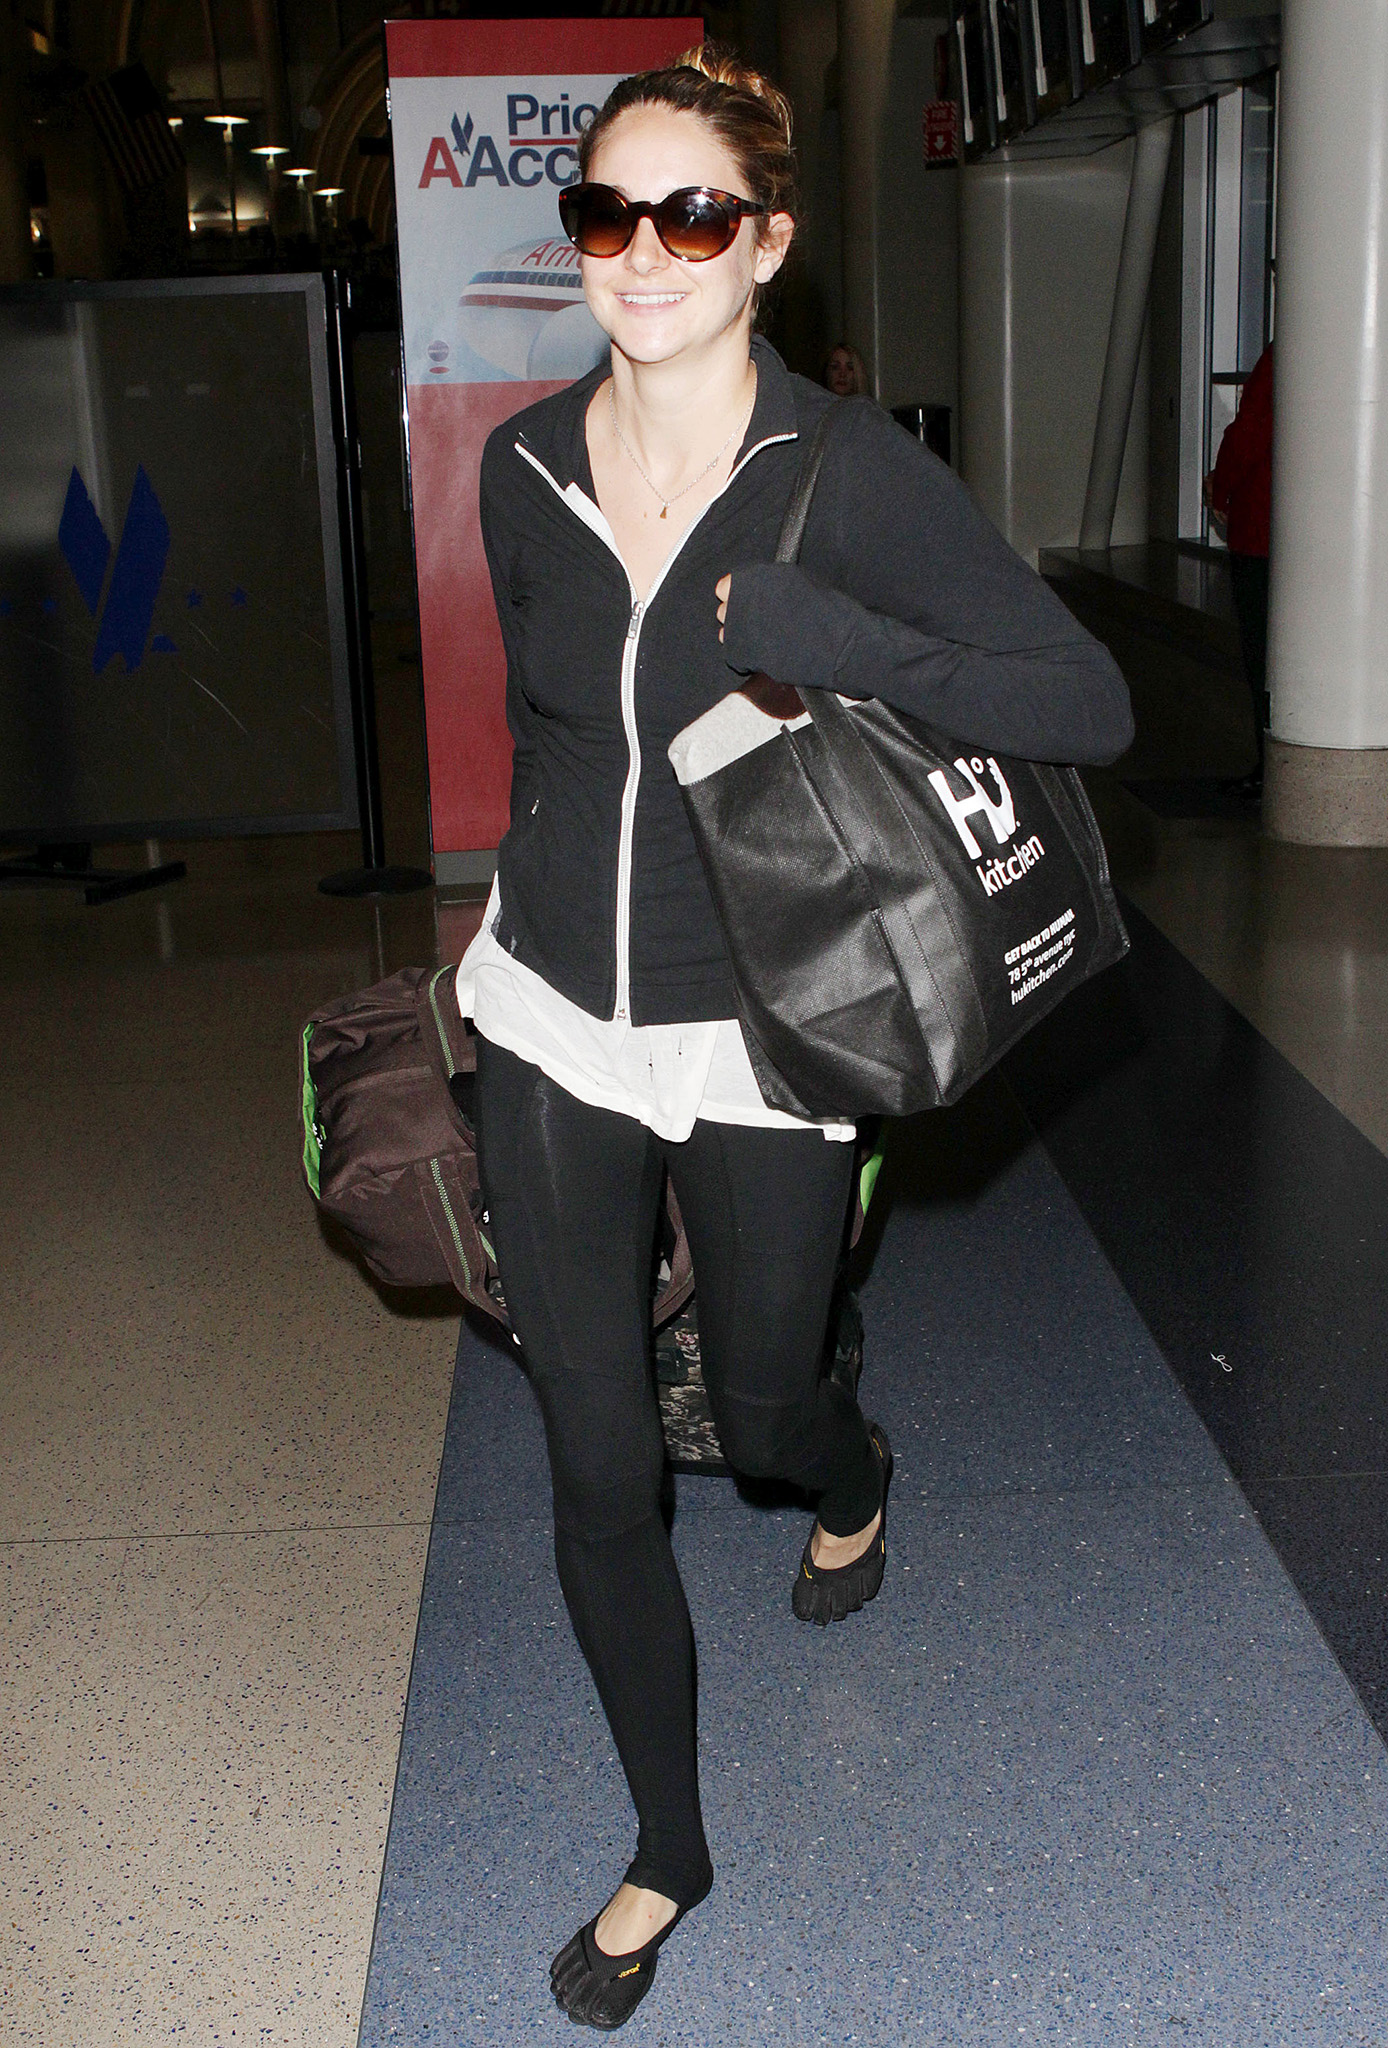 Woodley at the airport (Splash News)